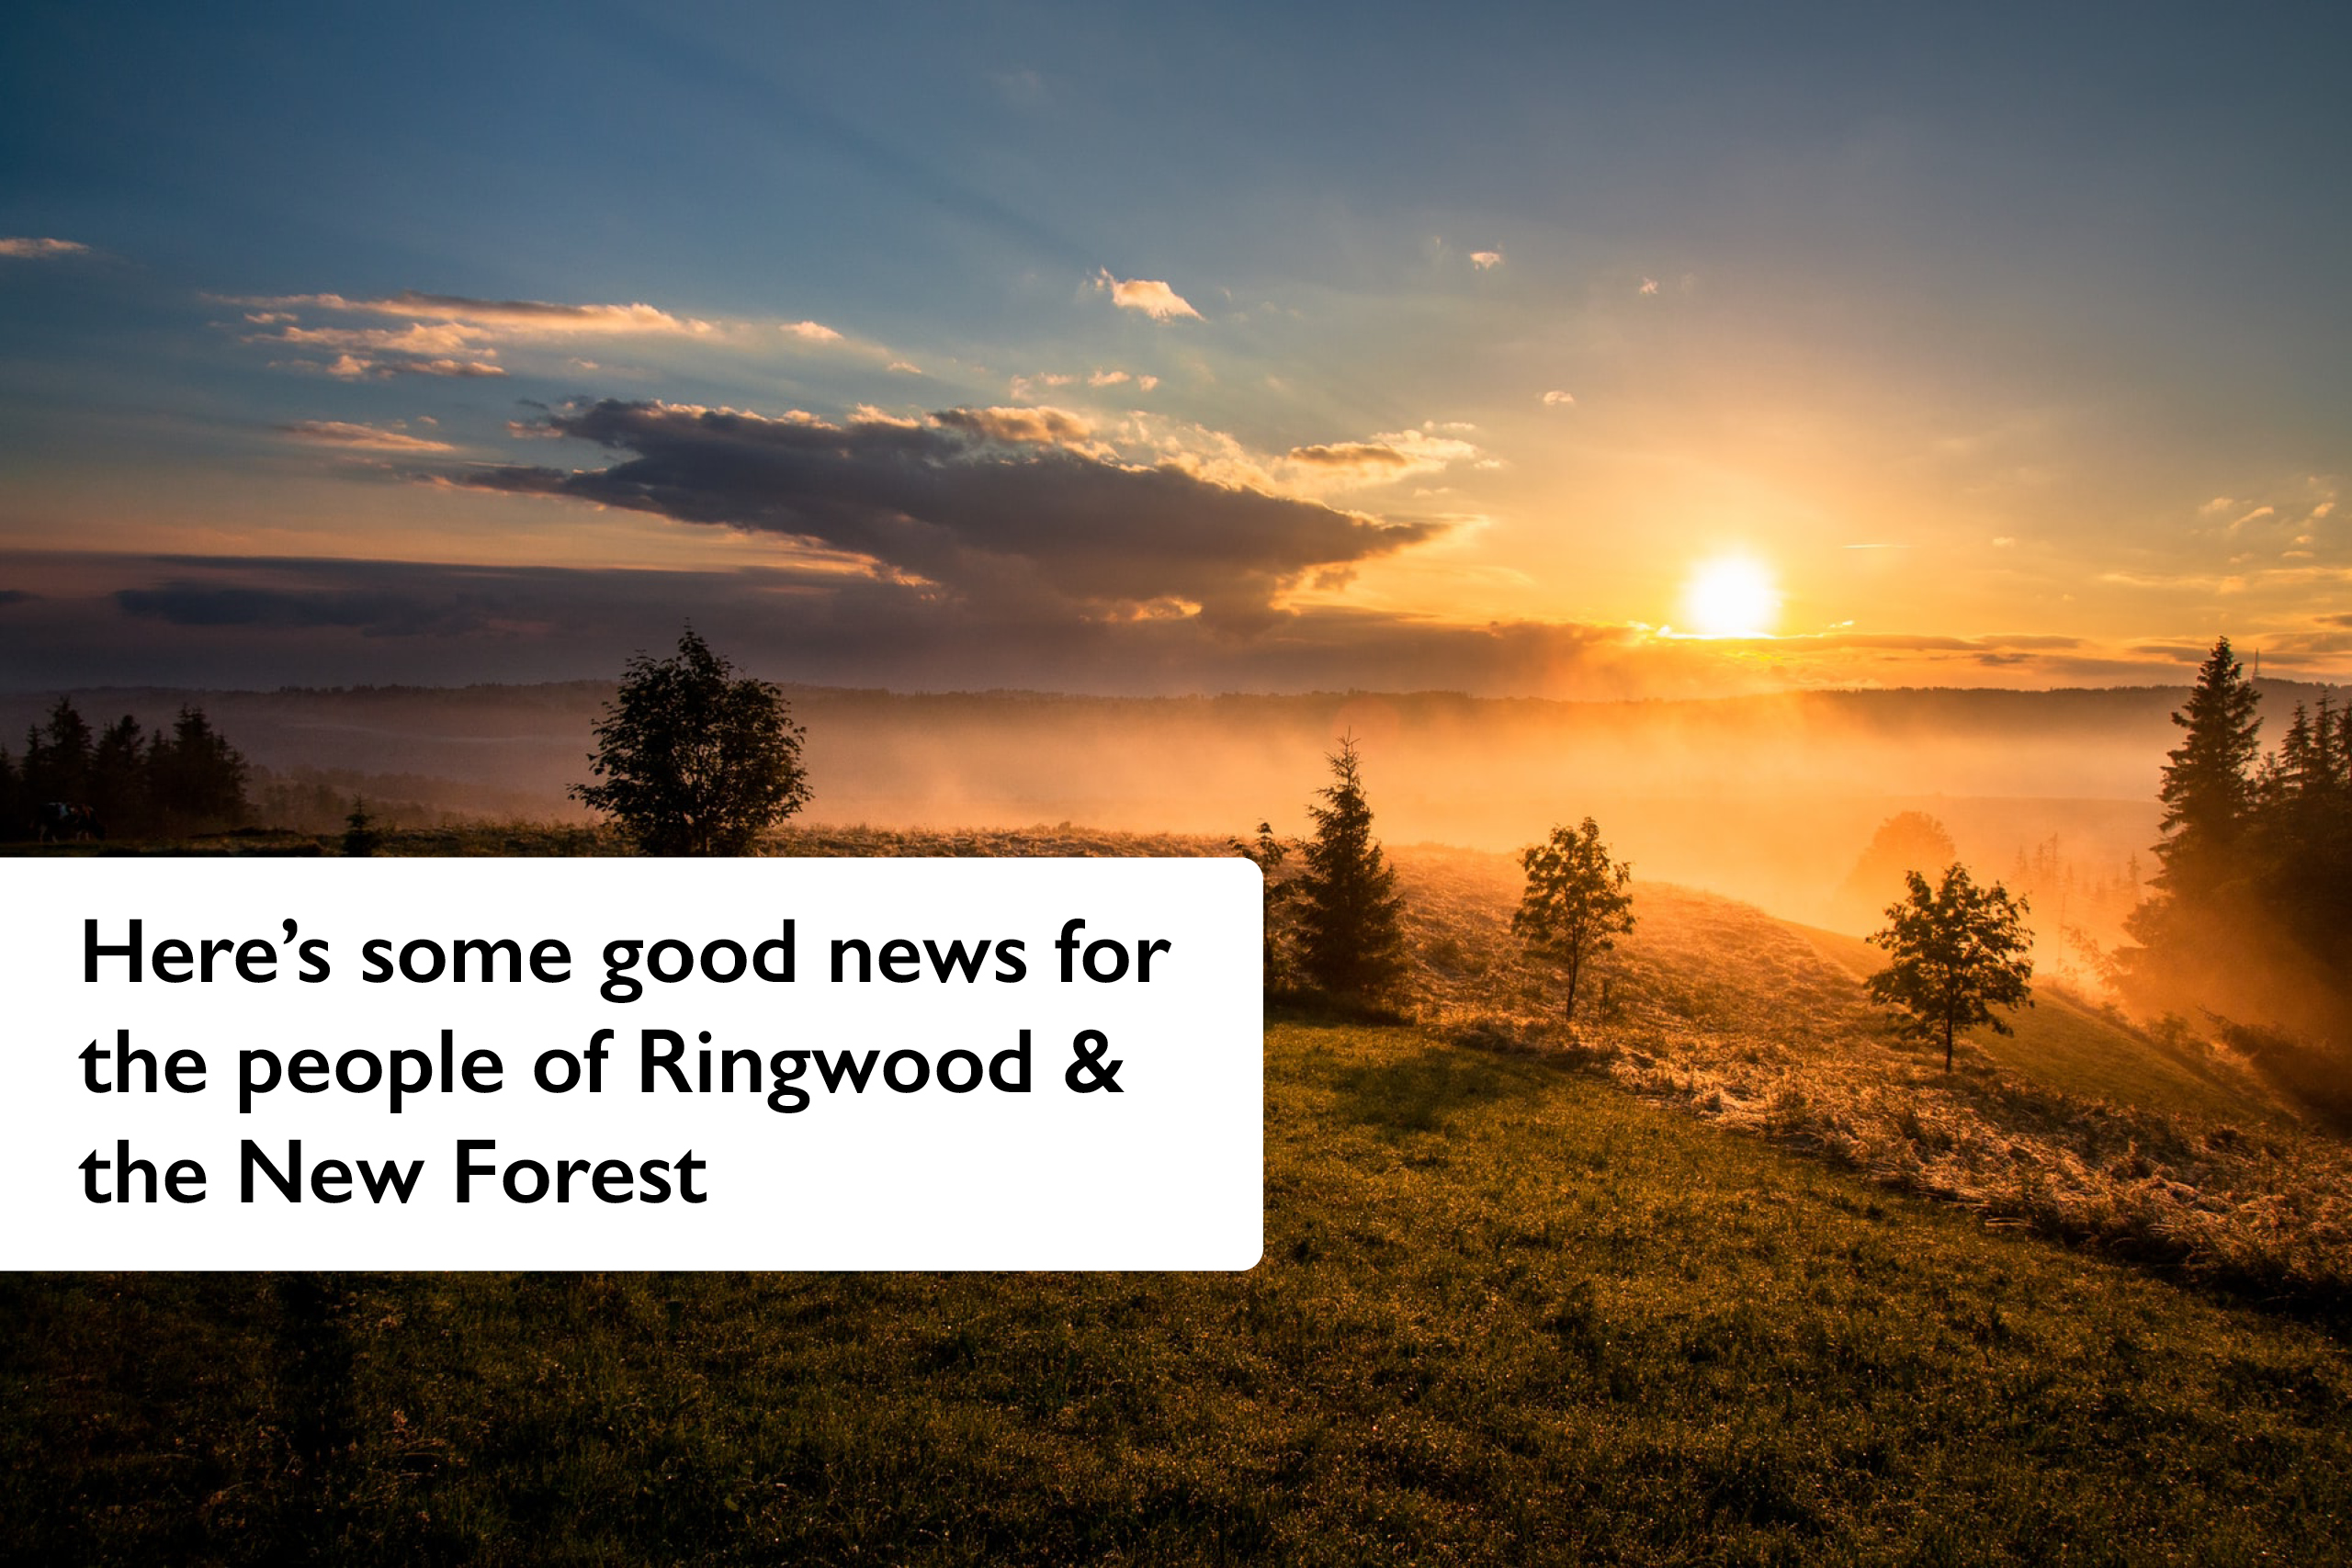 Here's some good news for the people of Ringwood & the New Forest